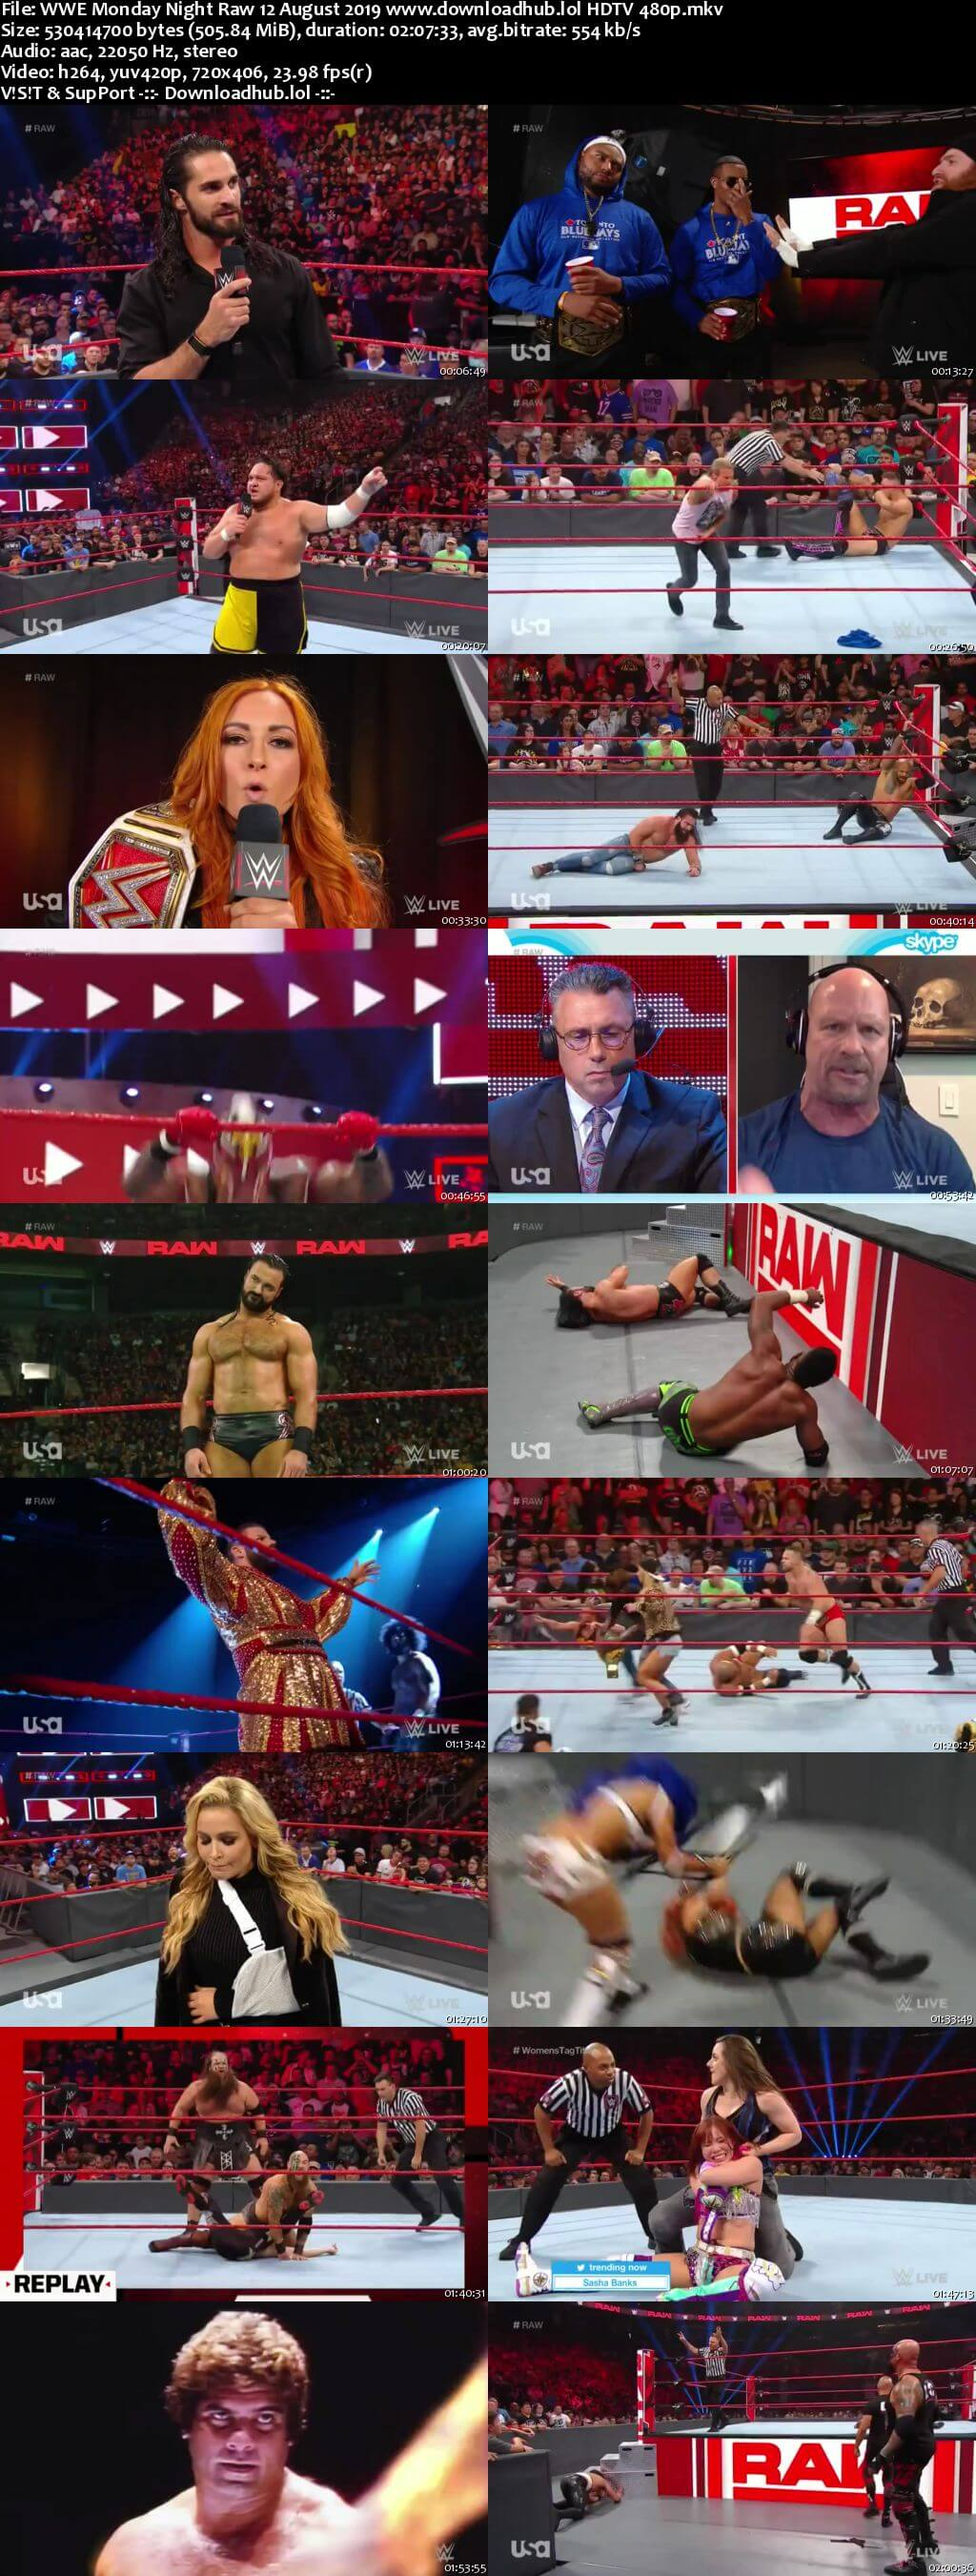 WWE Monday Night Raw 12th August 2019 500MB HDTVRip 480p